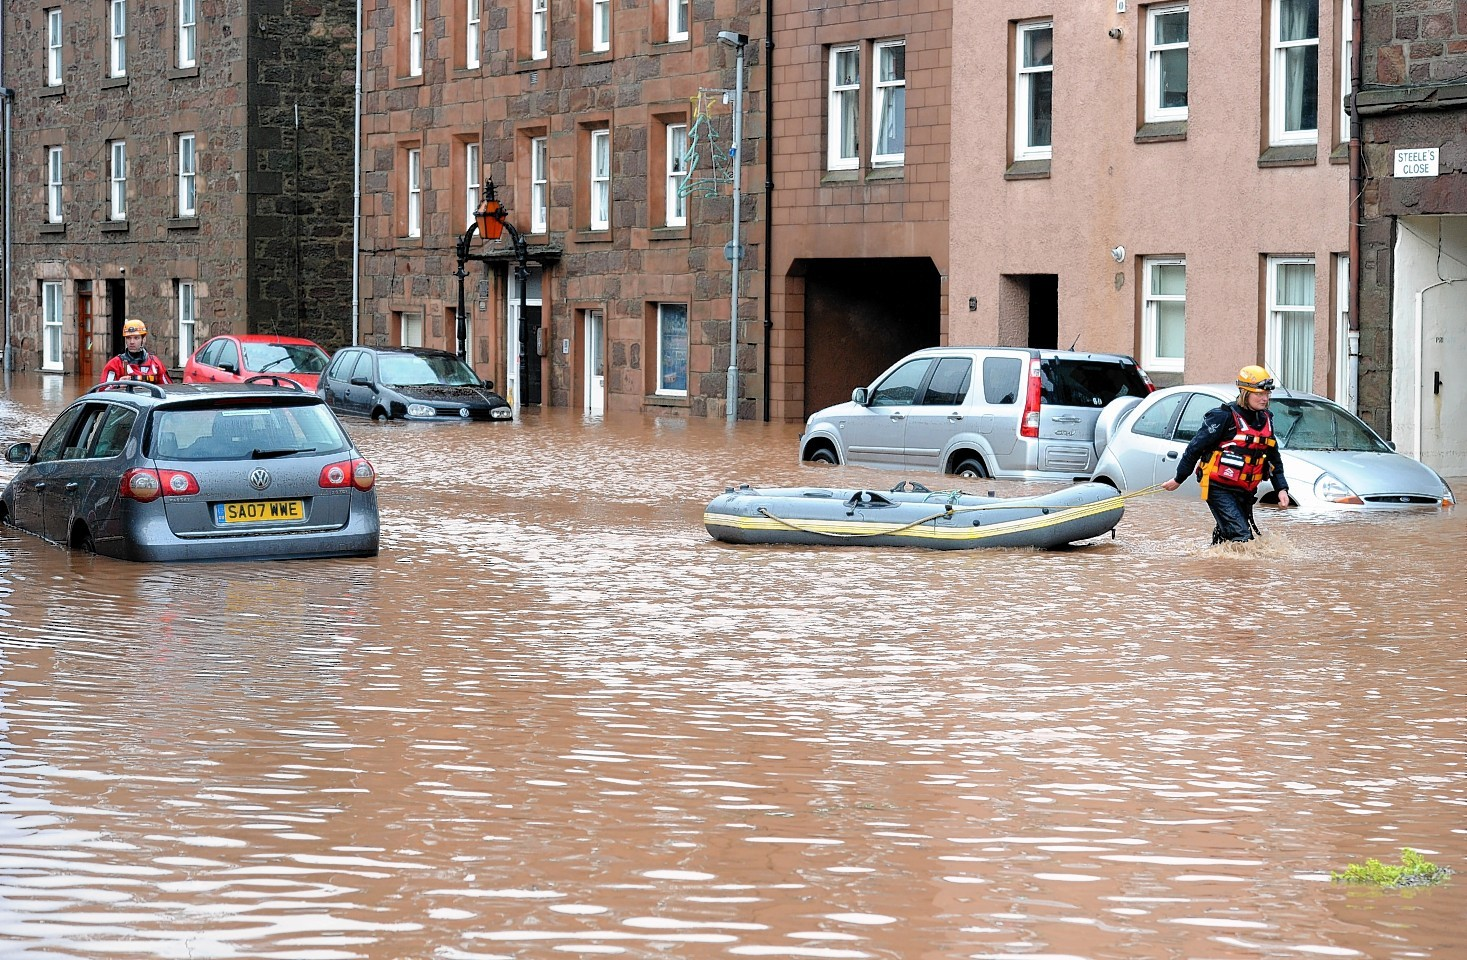 Stonehaven floods in previous years